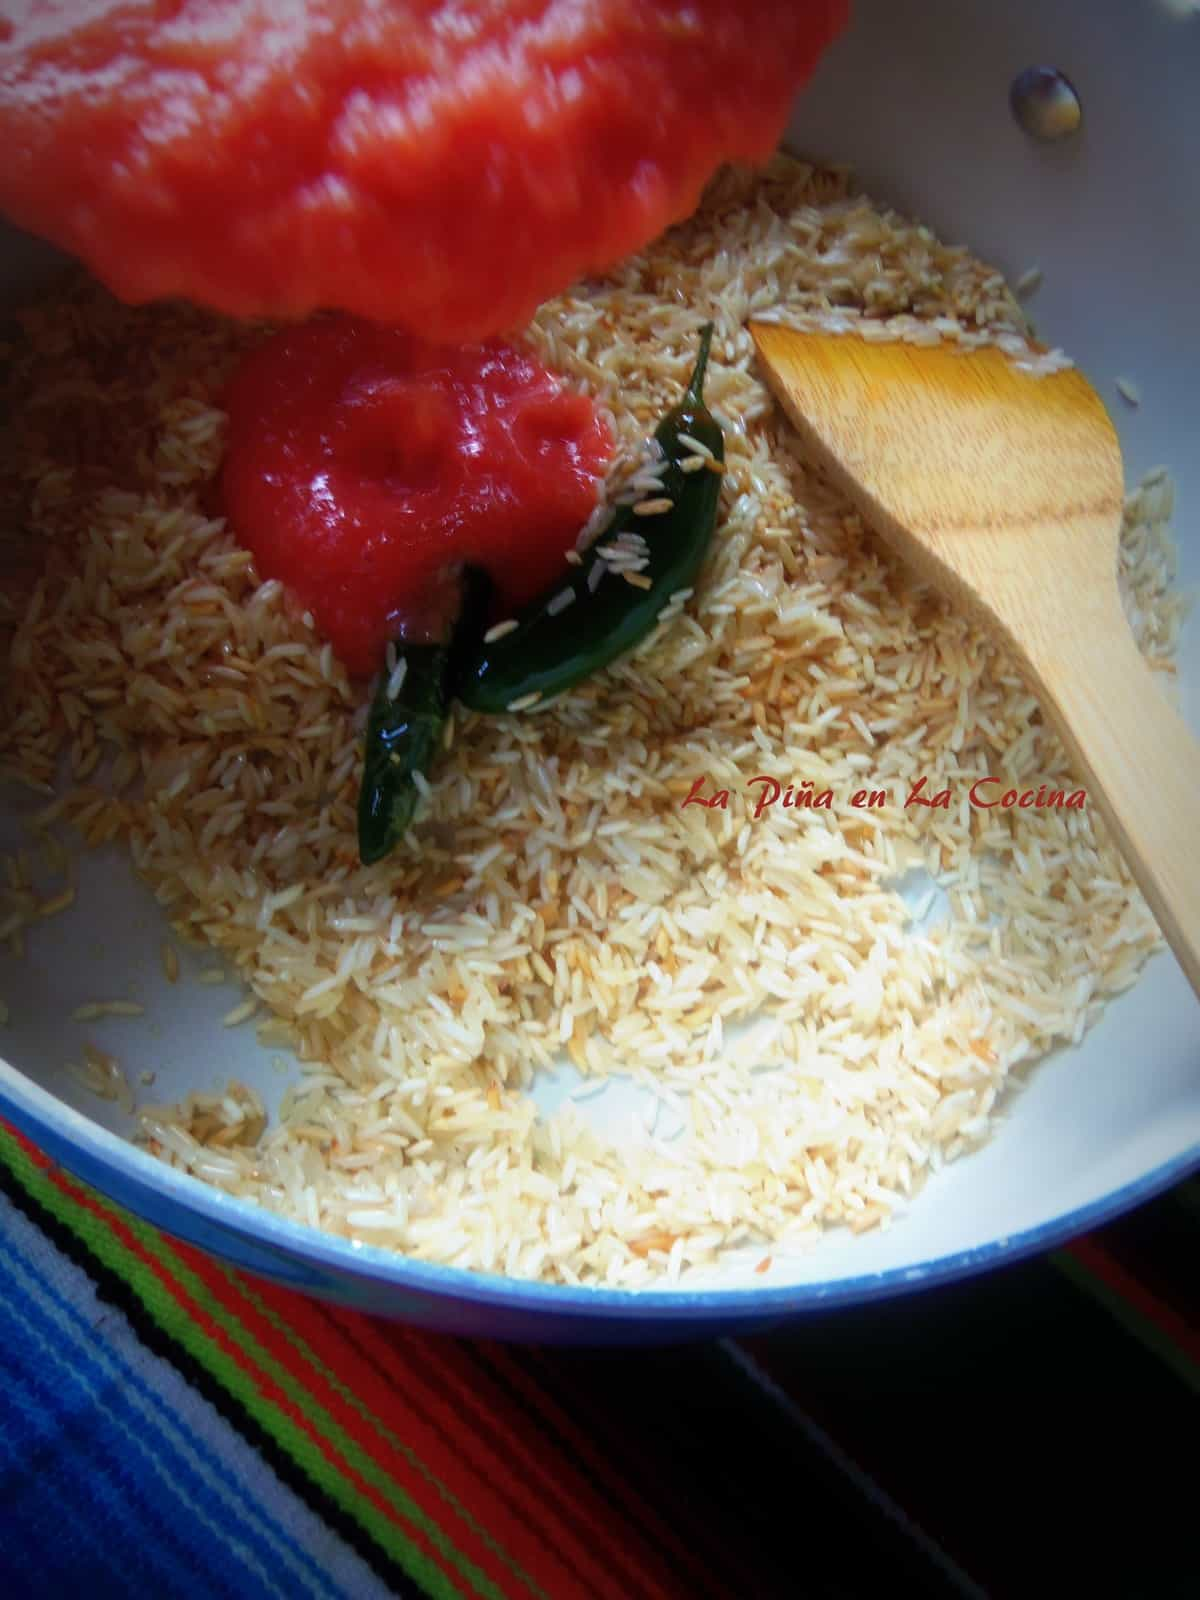 When using freshly blended tomato sauce, the rice will  come out a light orange color.